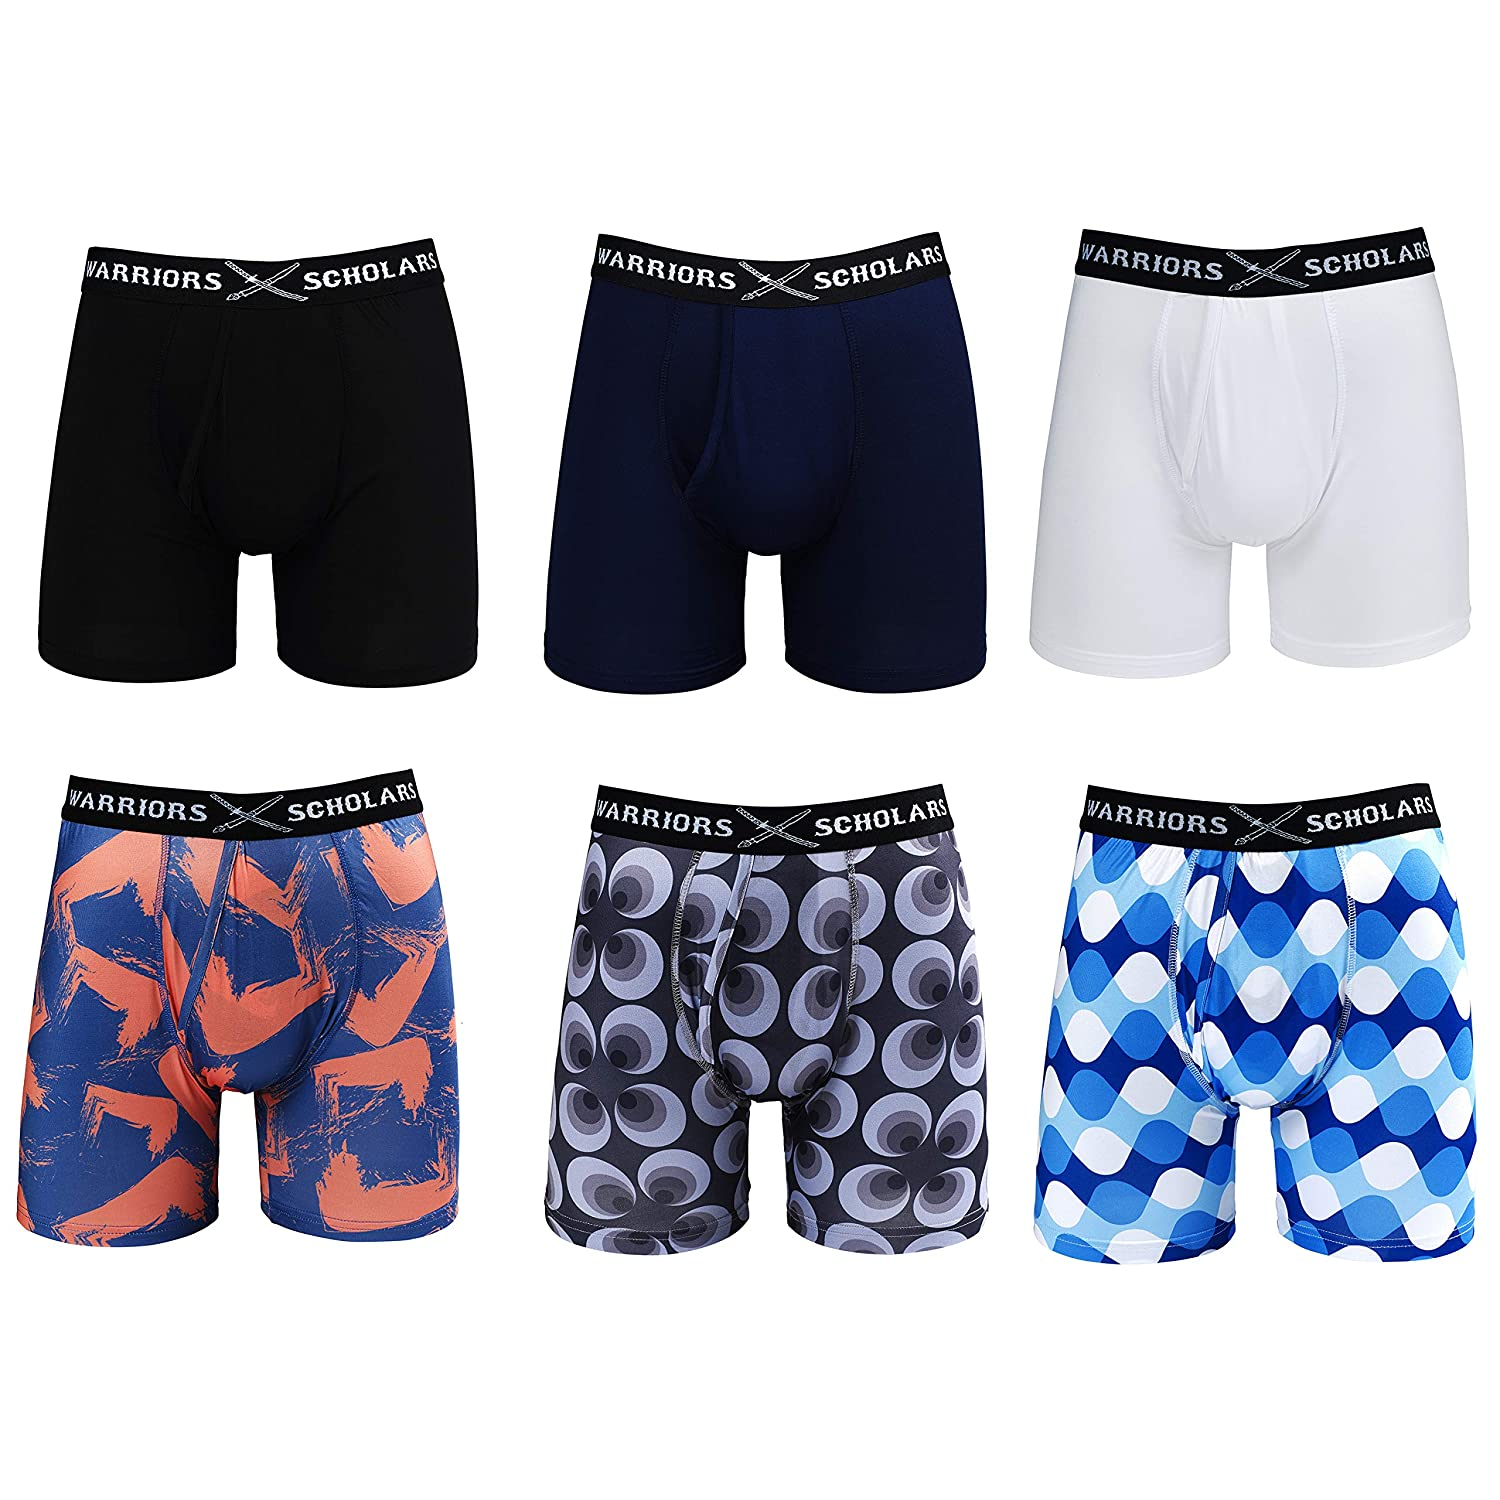 Warriors /& Scholars Mens Boxer Briefs 6 Set Multi Pack Youth Mens No Ride Up Underwear Boxers for Men